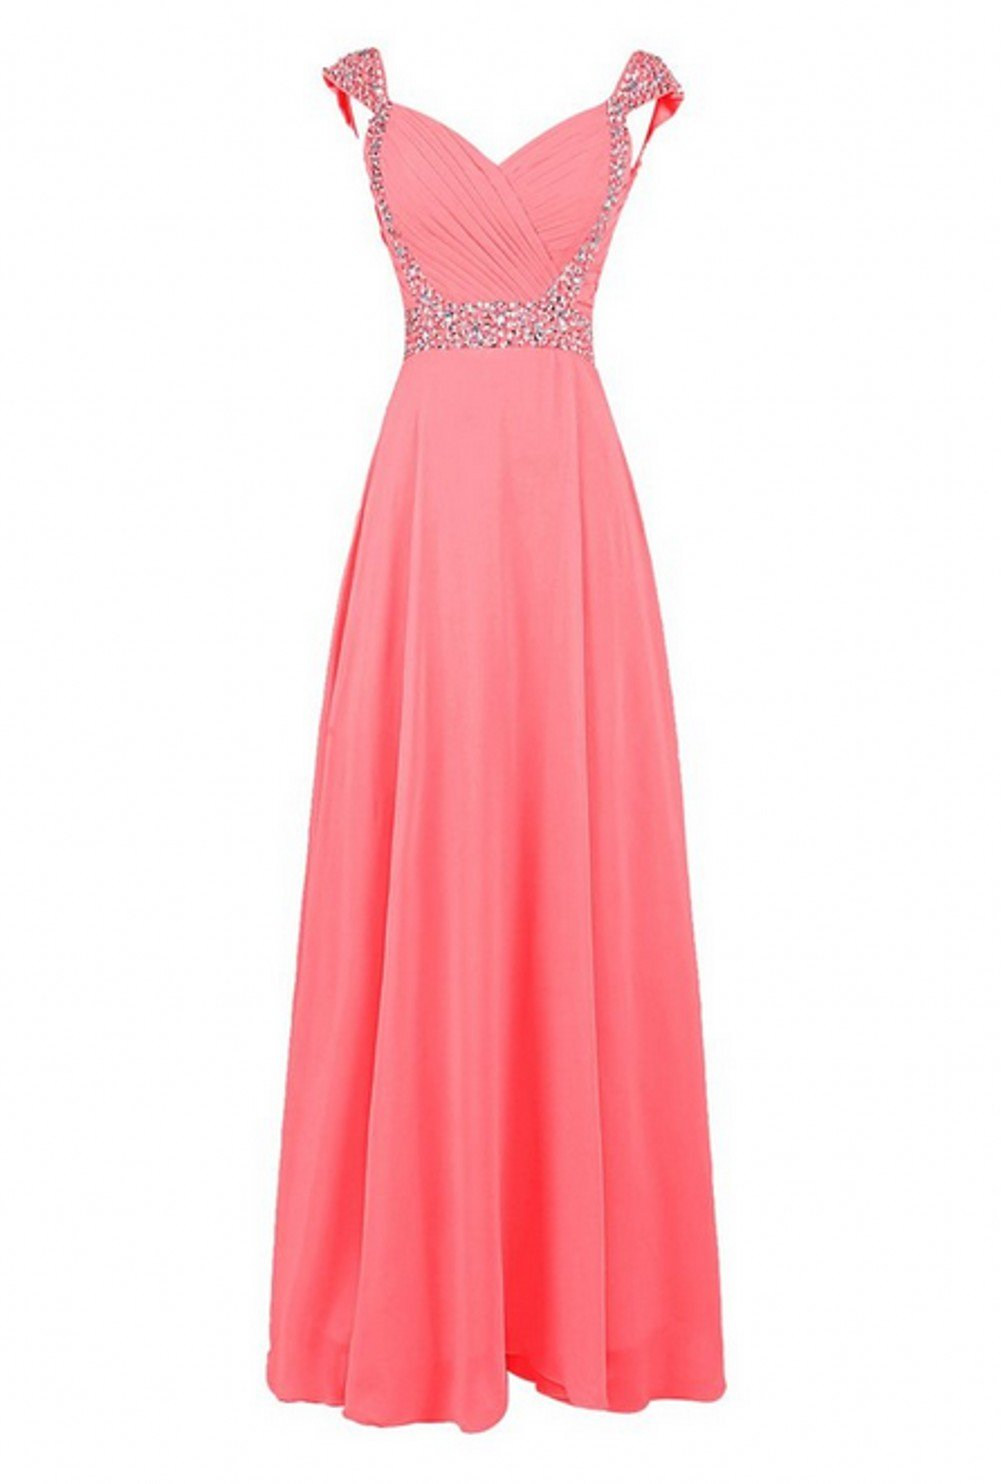 Love Dress Women Long Bridesmaid Dress Prom Party Gown Coral Us 26w